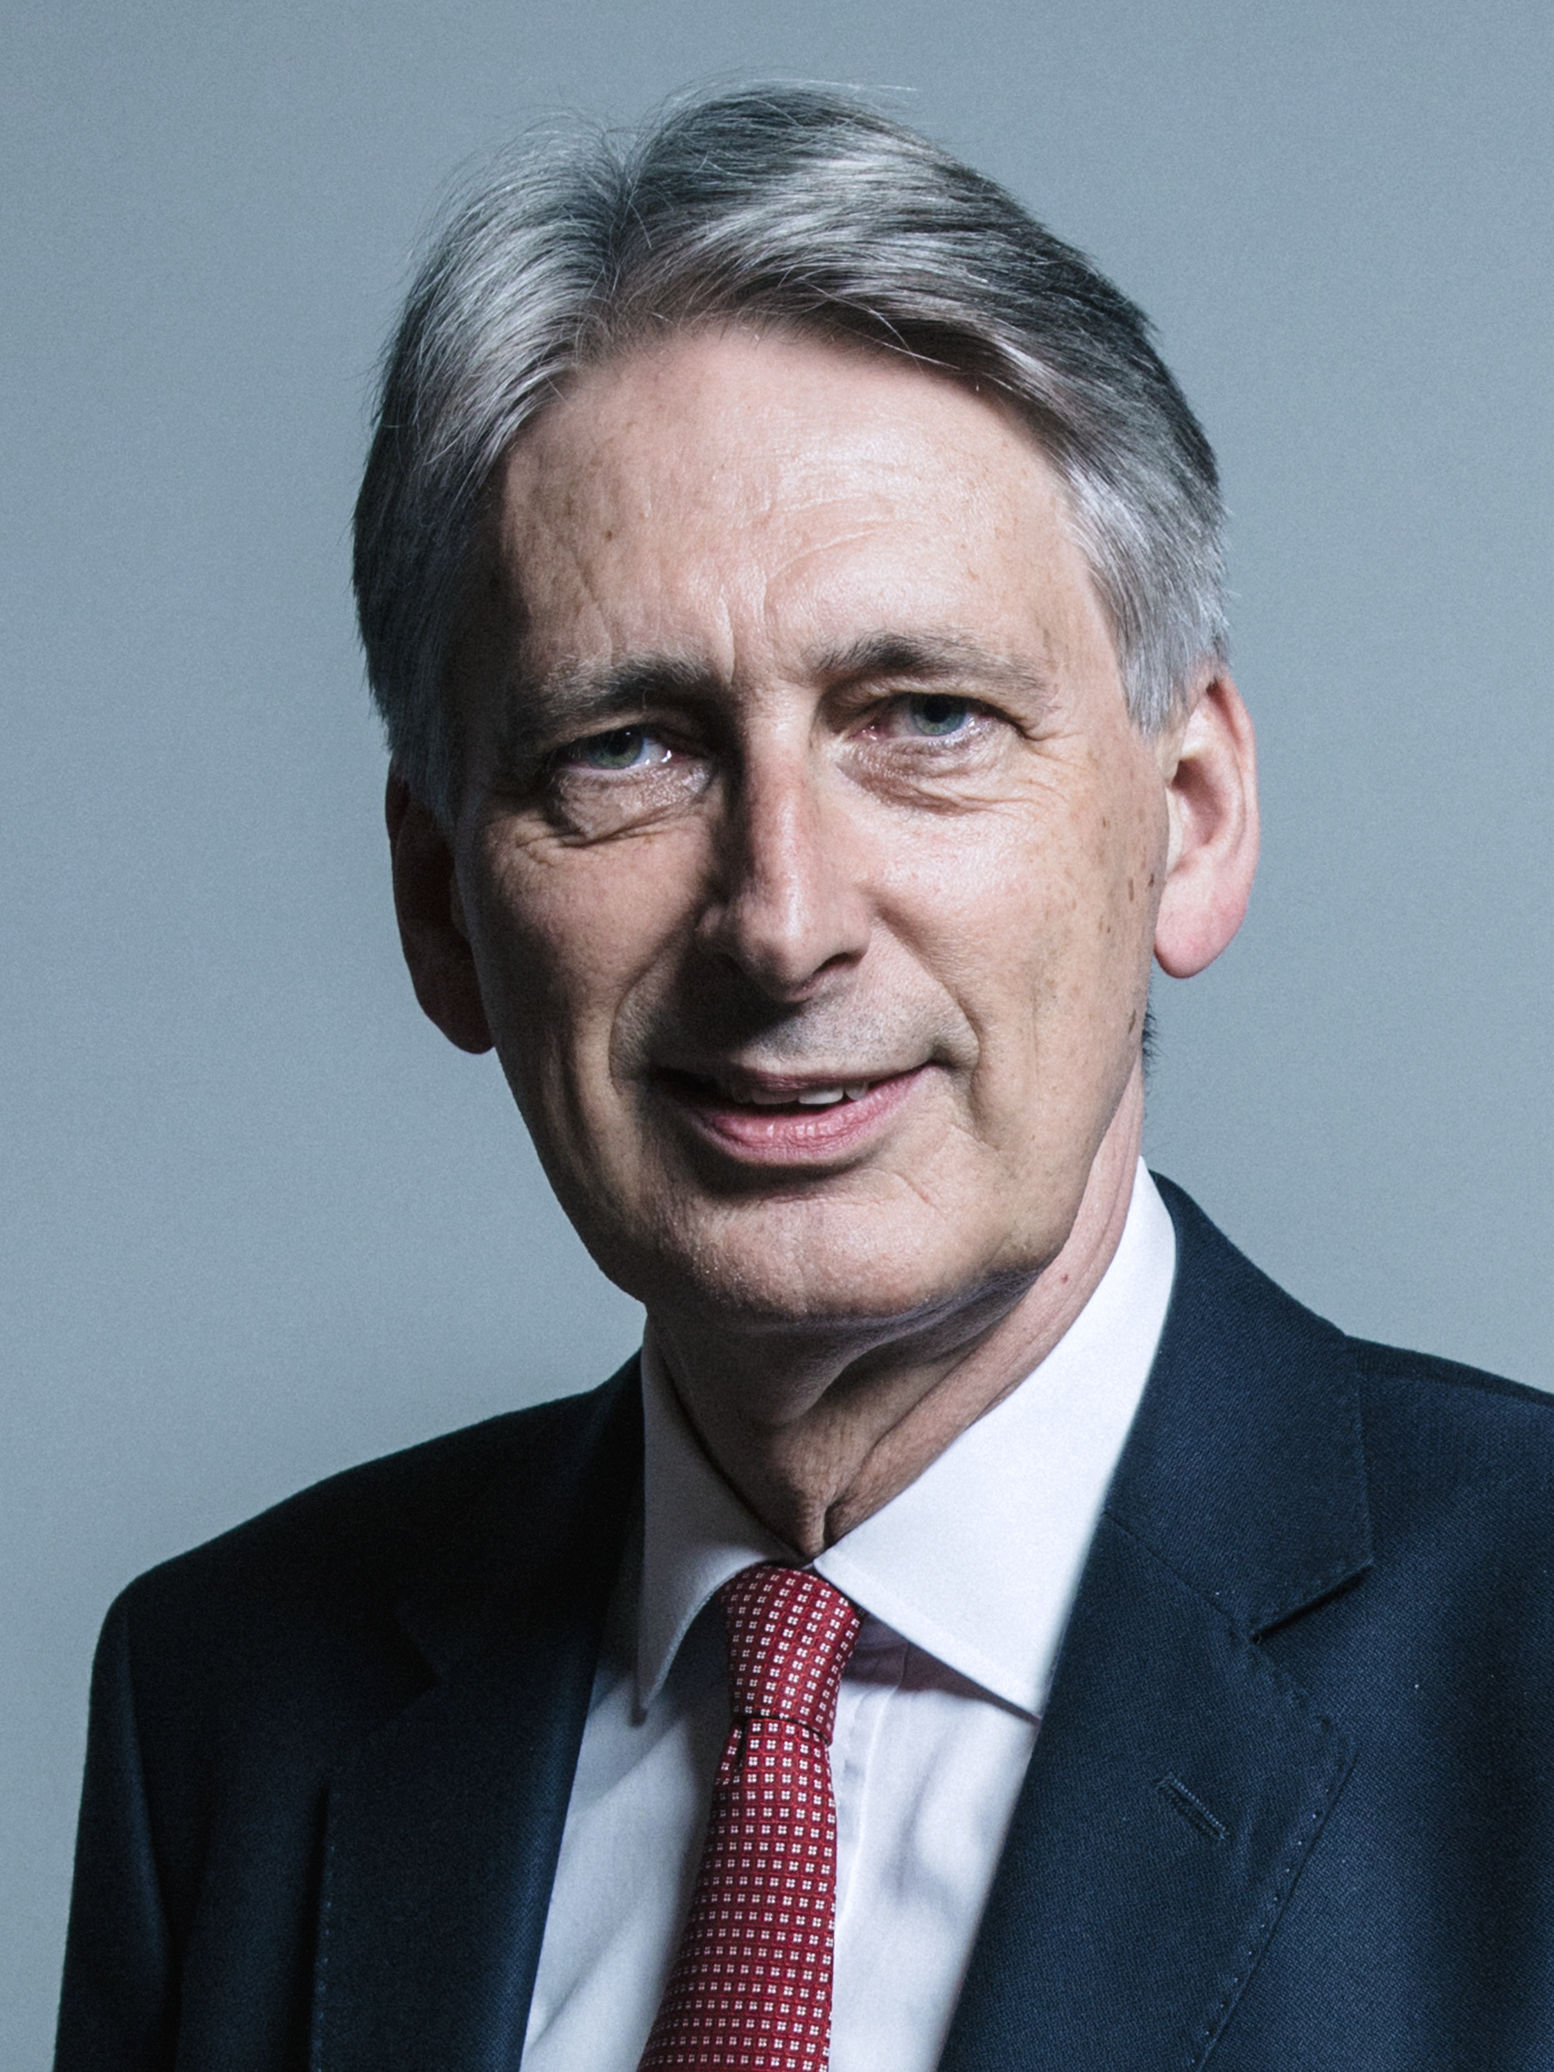 Pleasing Philip Hammond Wikipedia Home Interior And Landscaping Oversignezvosmurscom